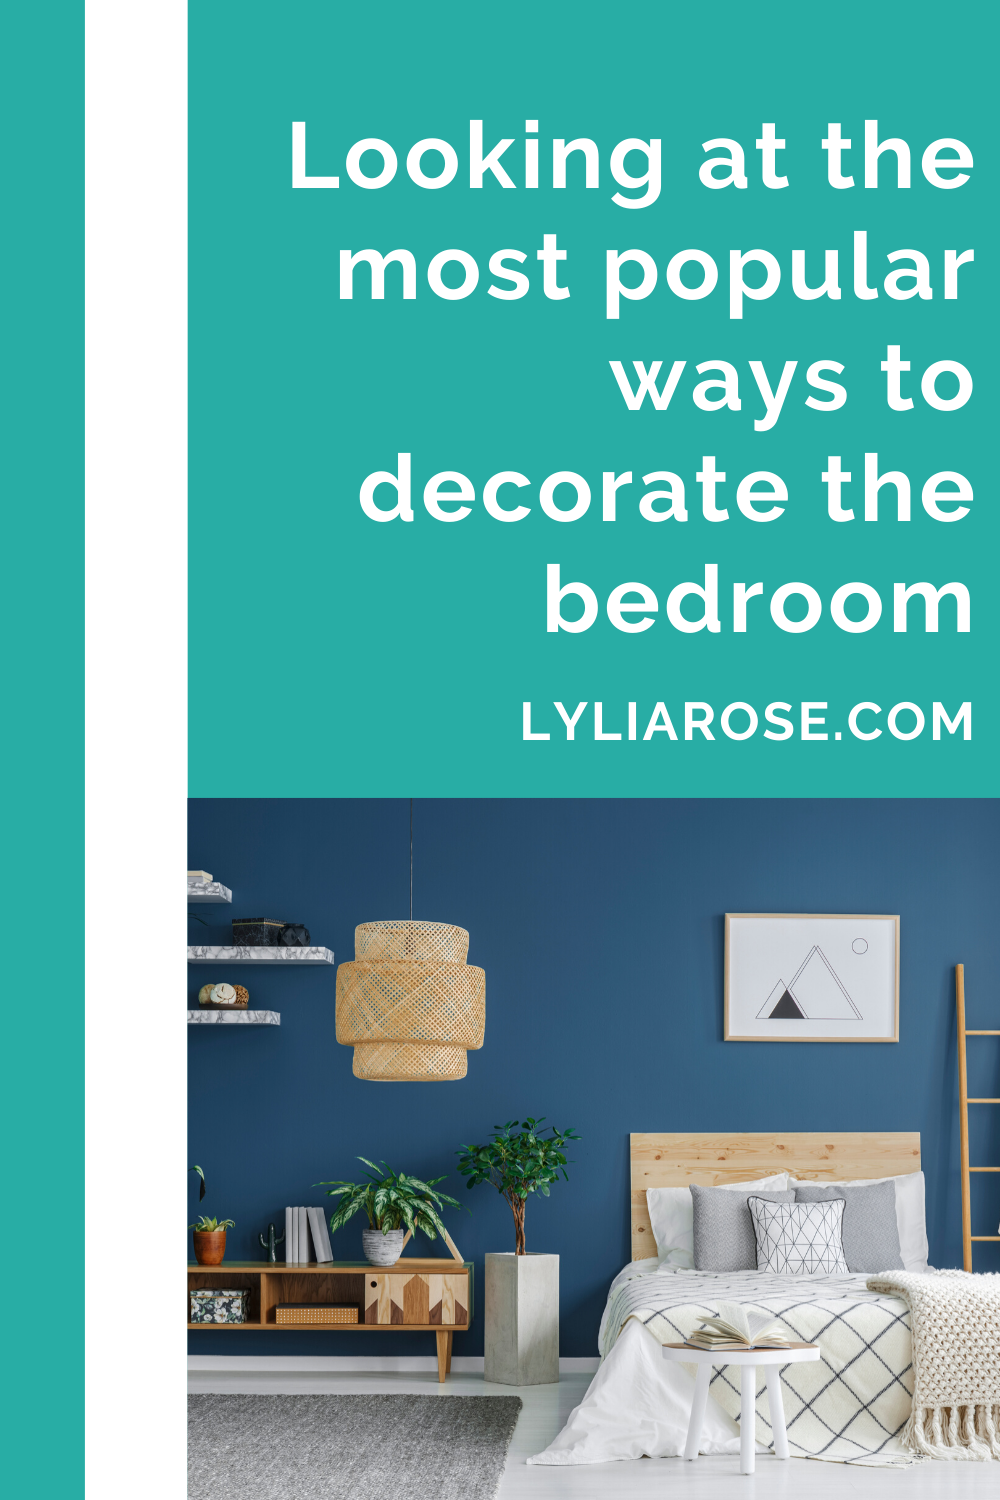 Looking at the most popular ways to decorate the bedroom (1)